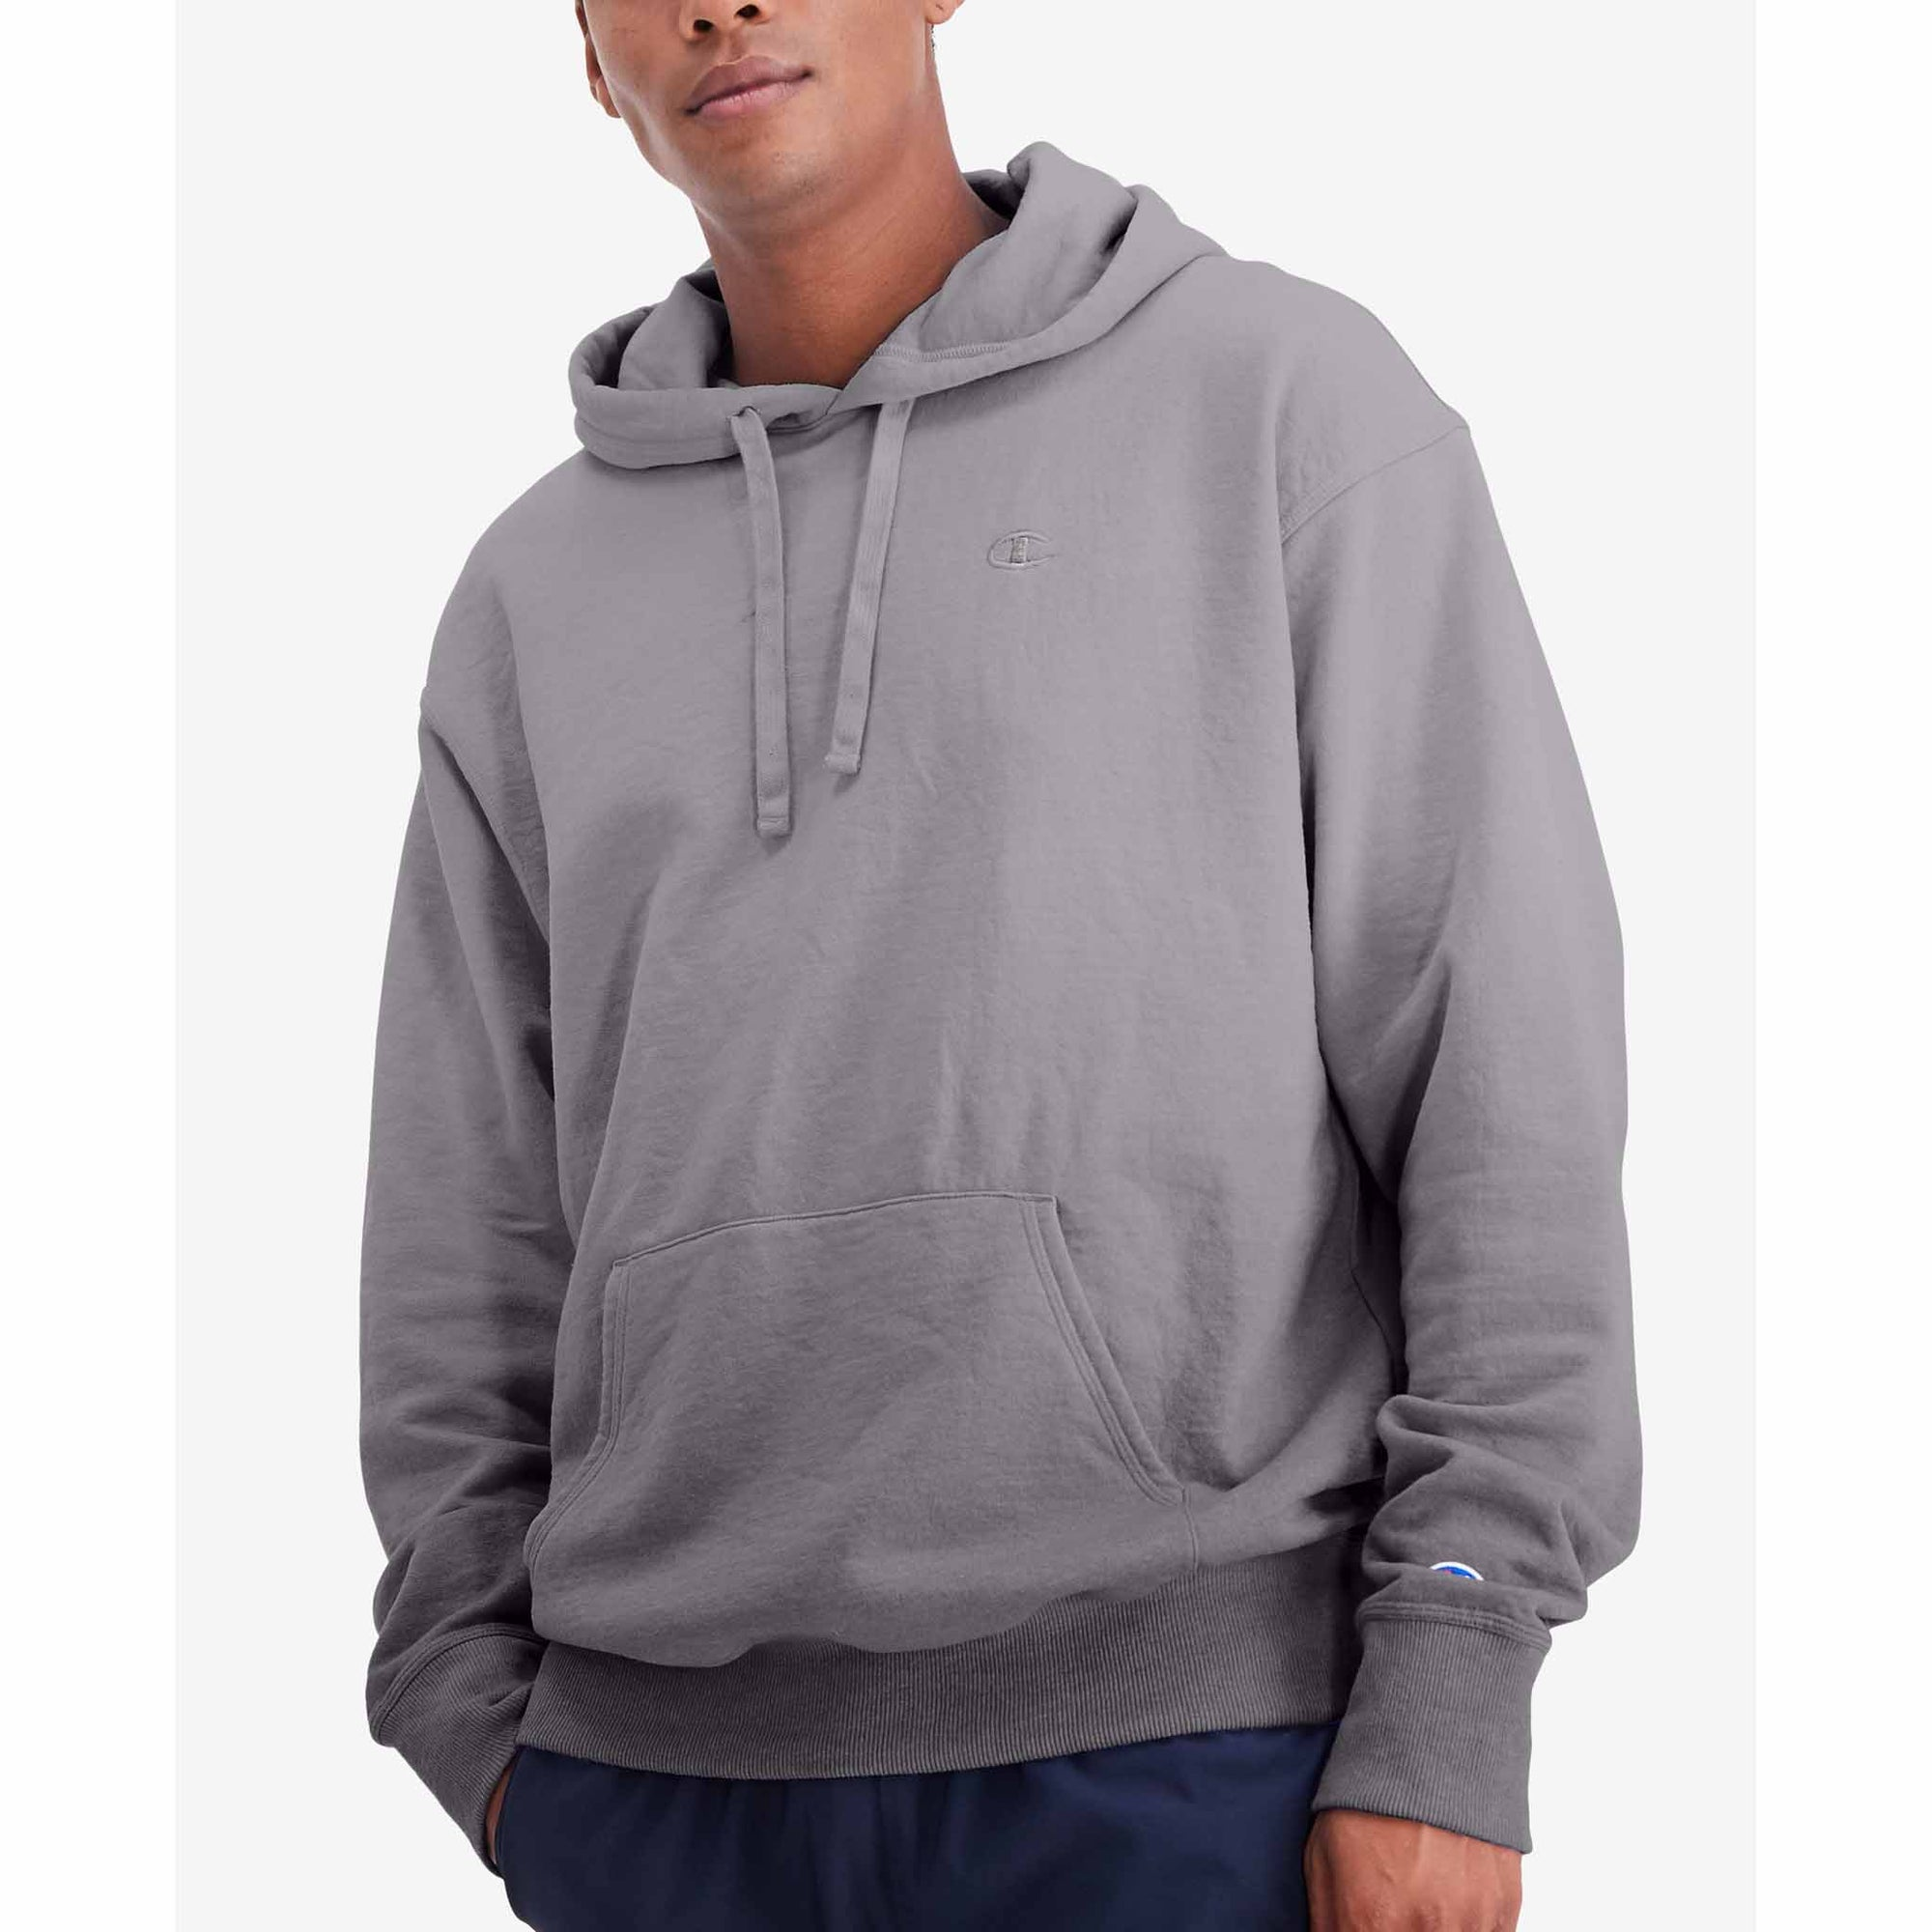 Champion Powerblend Ombre Hoodie Sweatshirt à capuchon pour homme Ombre Ginger Red